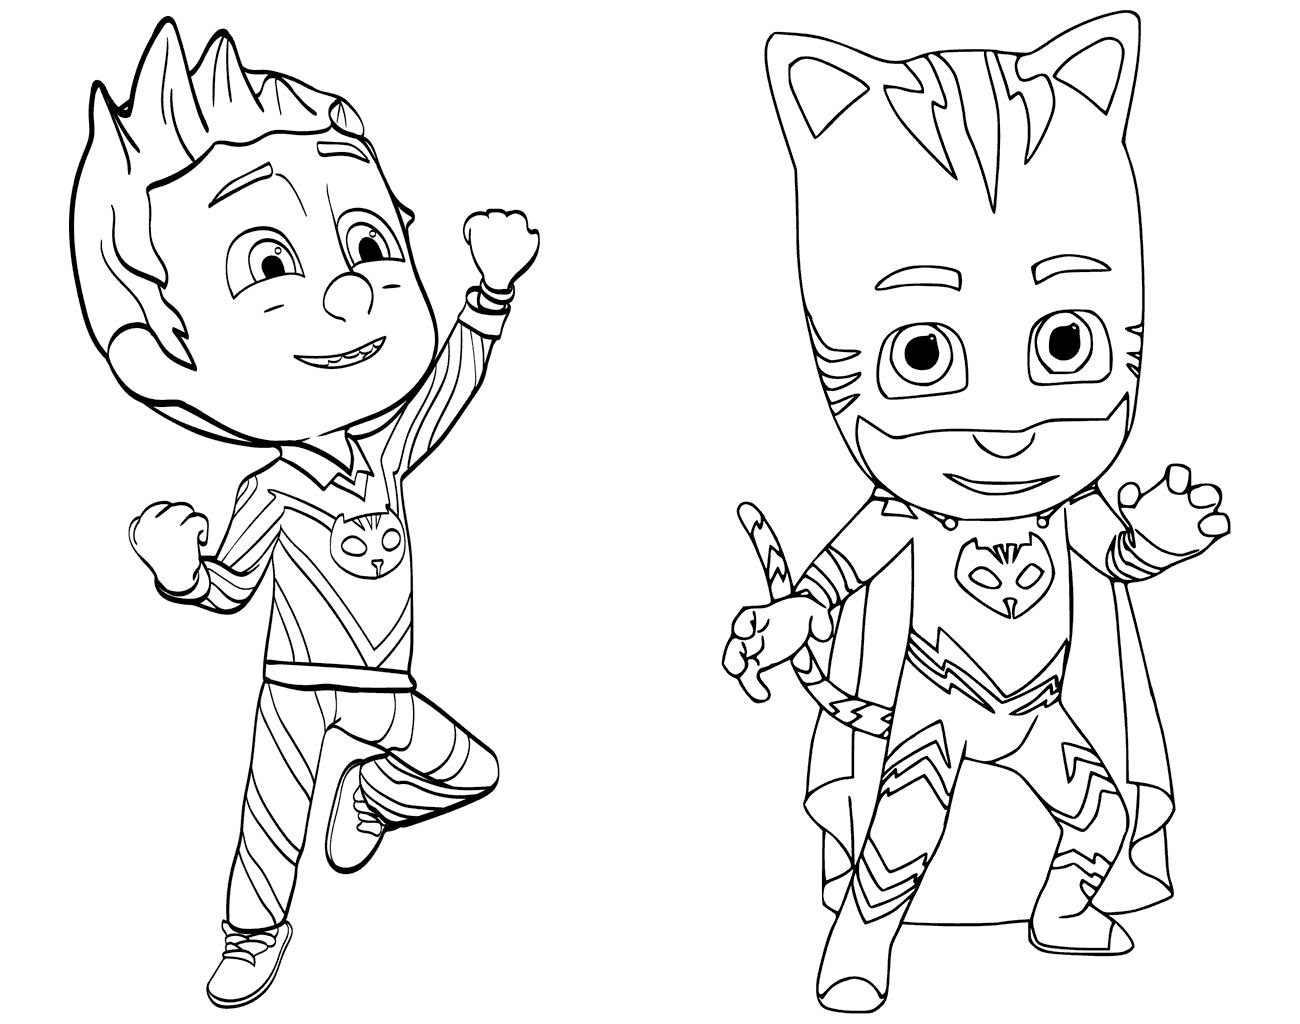 Connor AKA Catboy Coloring Page